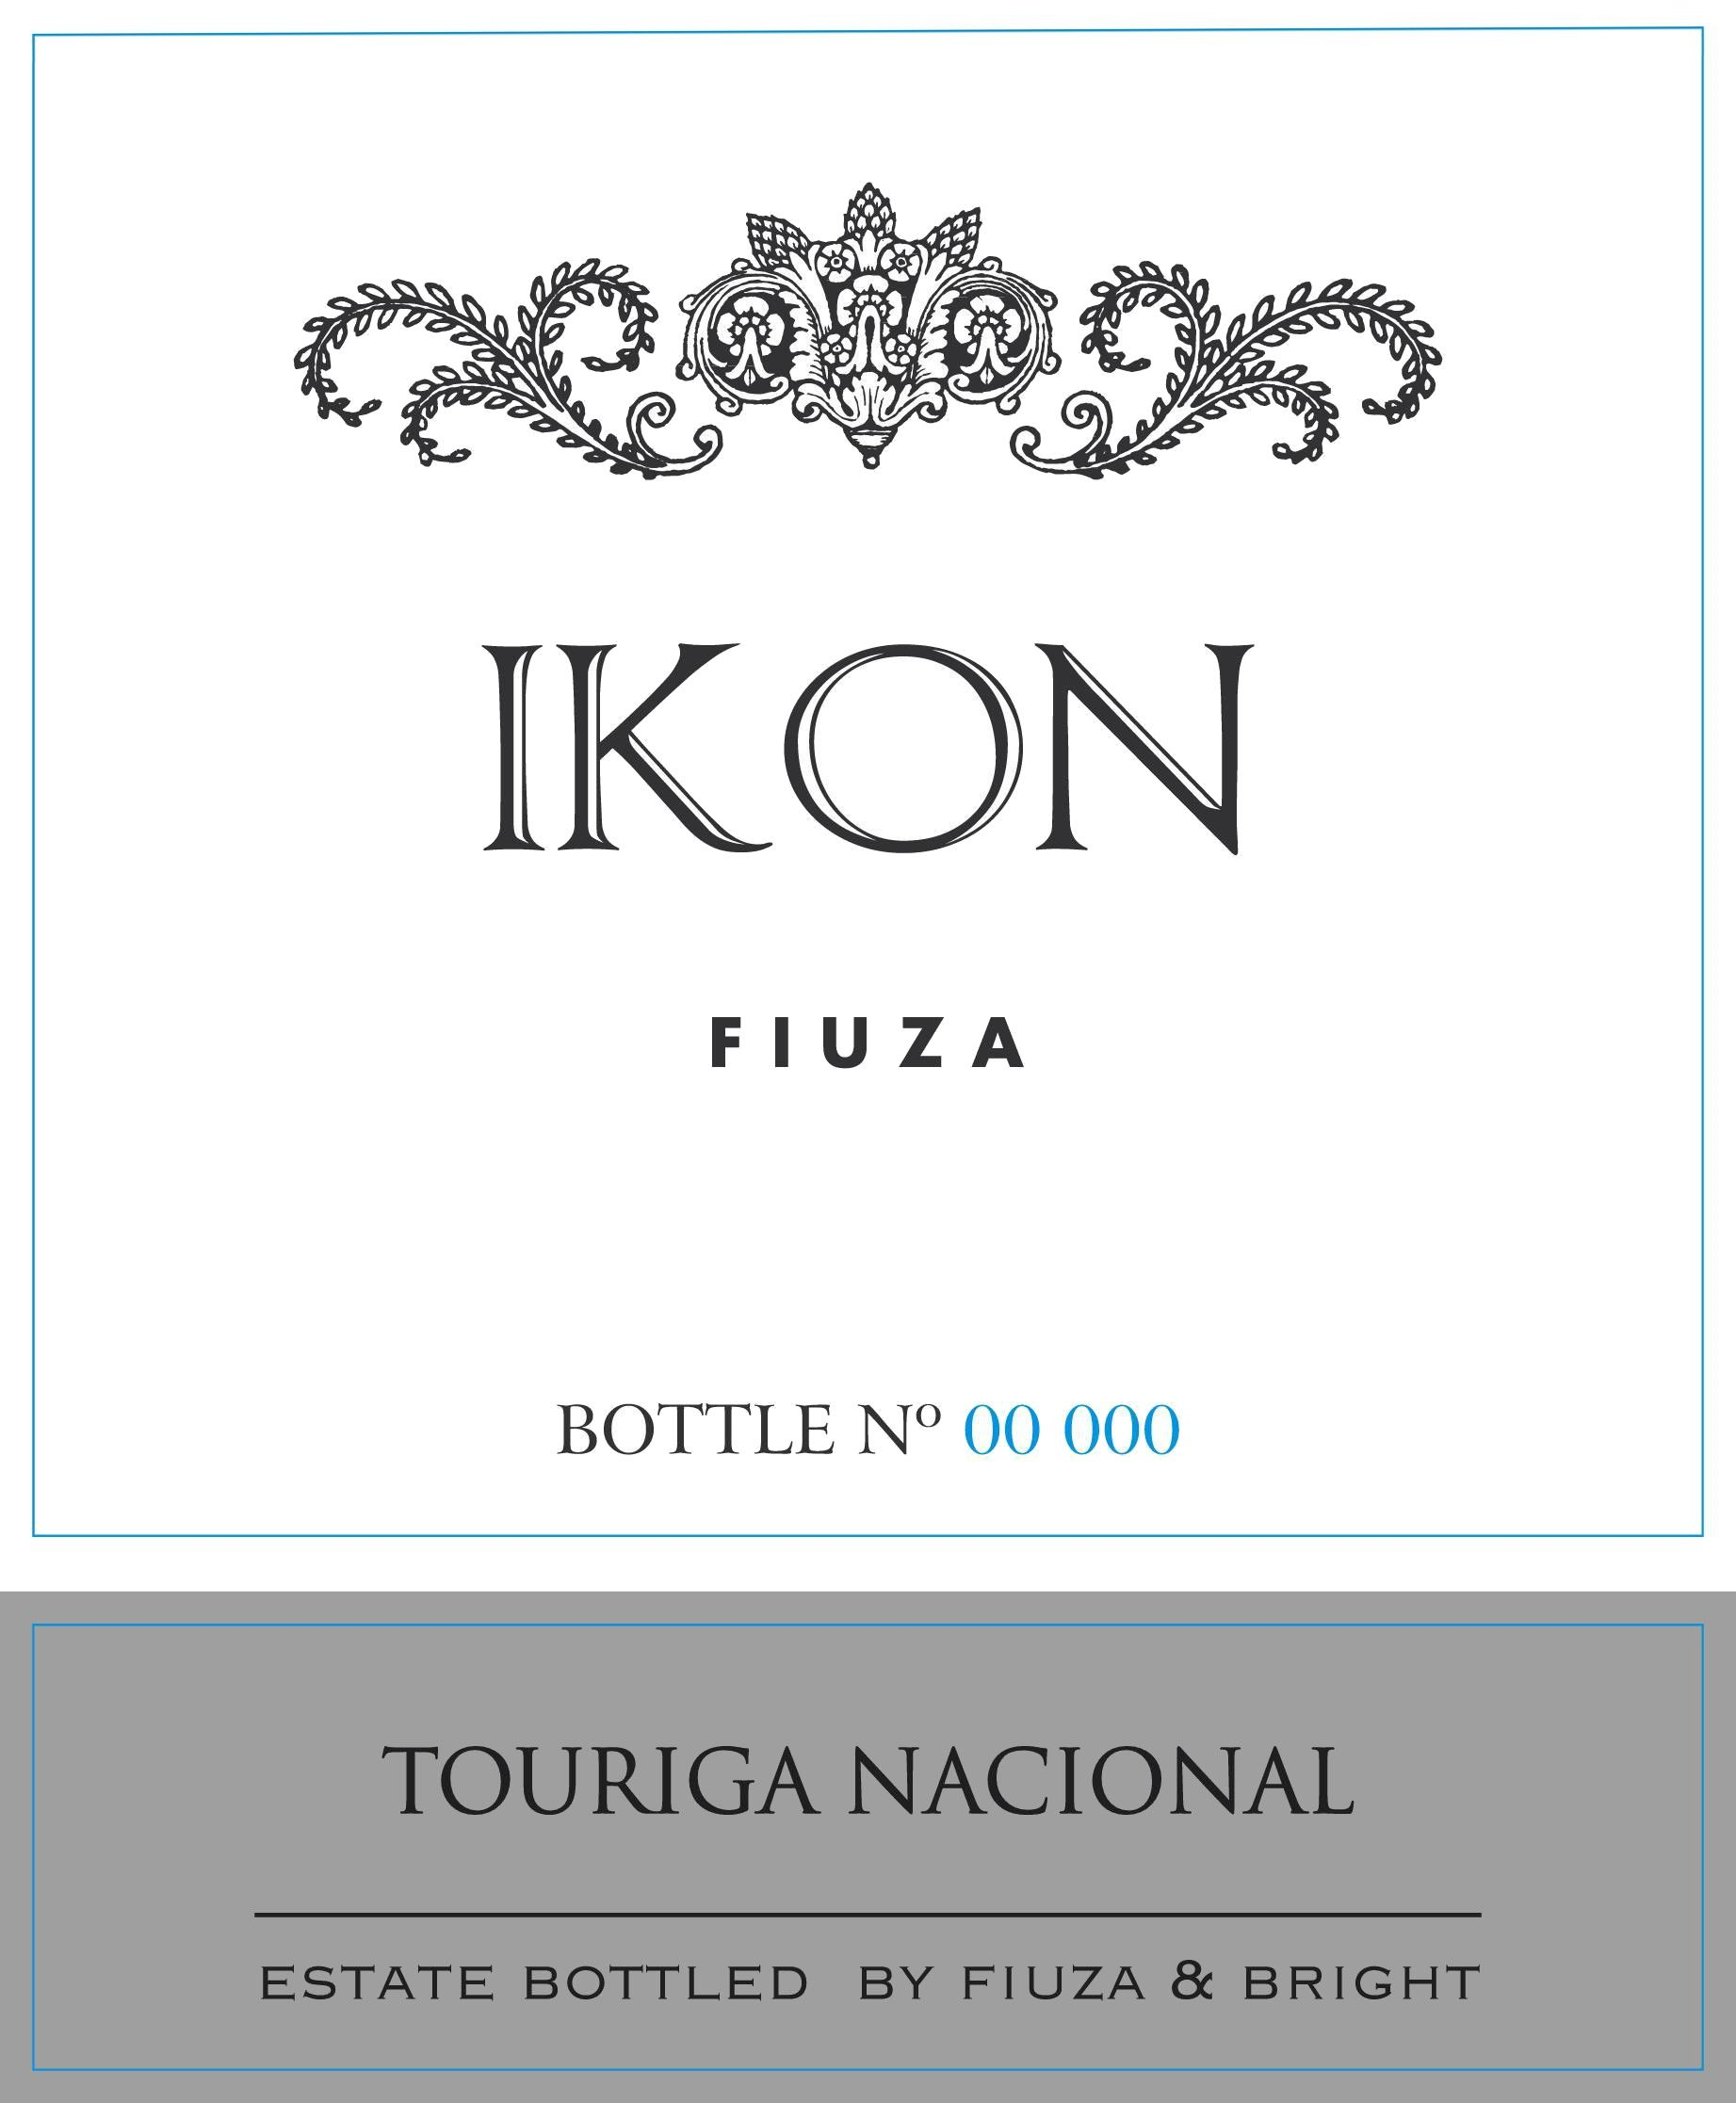 Fiuza & Bright Ikon Touriga Nacional 2012 Front Label